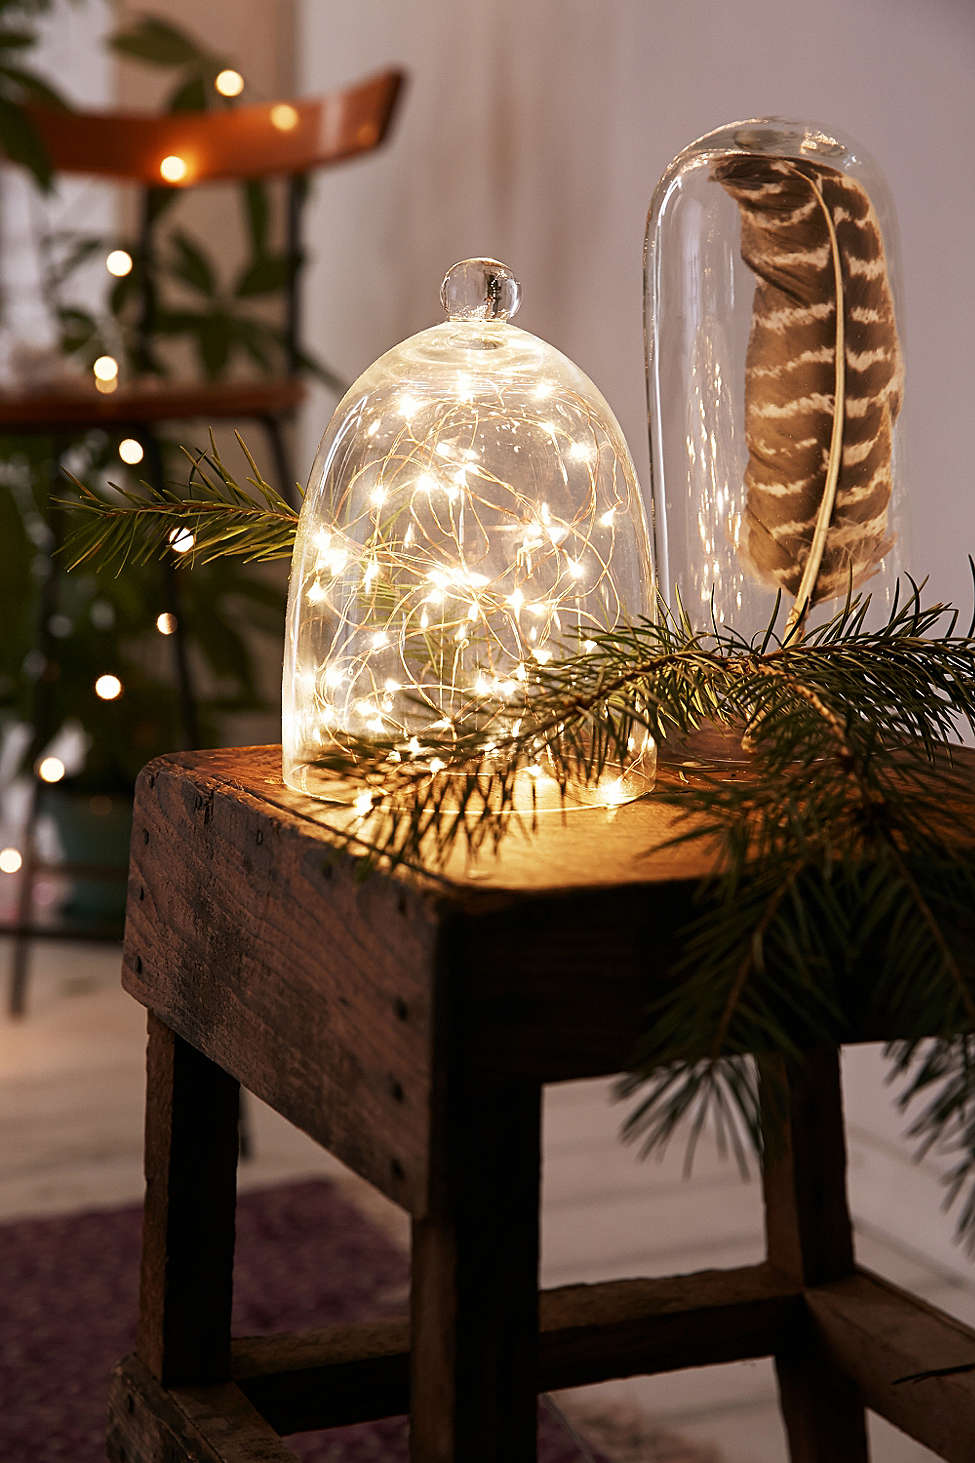 repurpose string lights into a table lamp you can use all year round - Year Round Christmas Lights